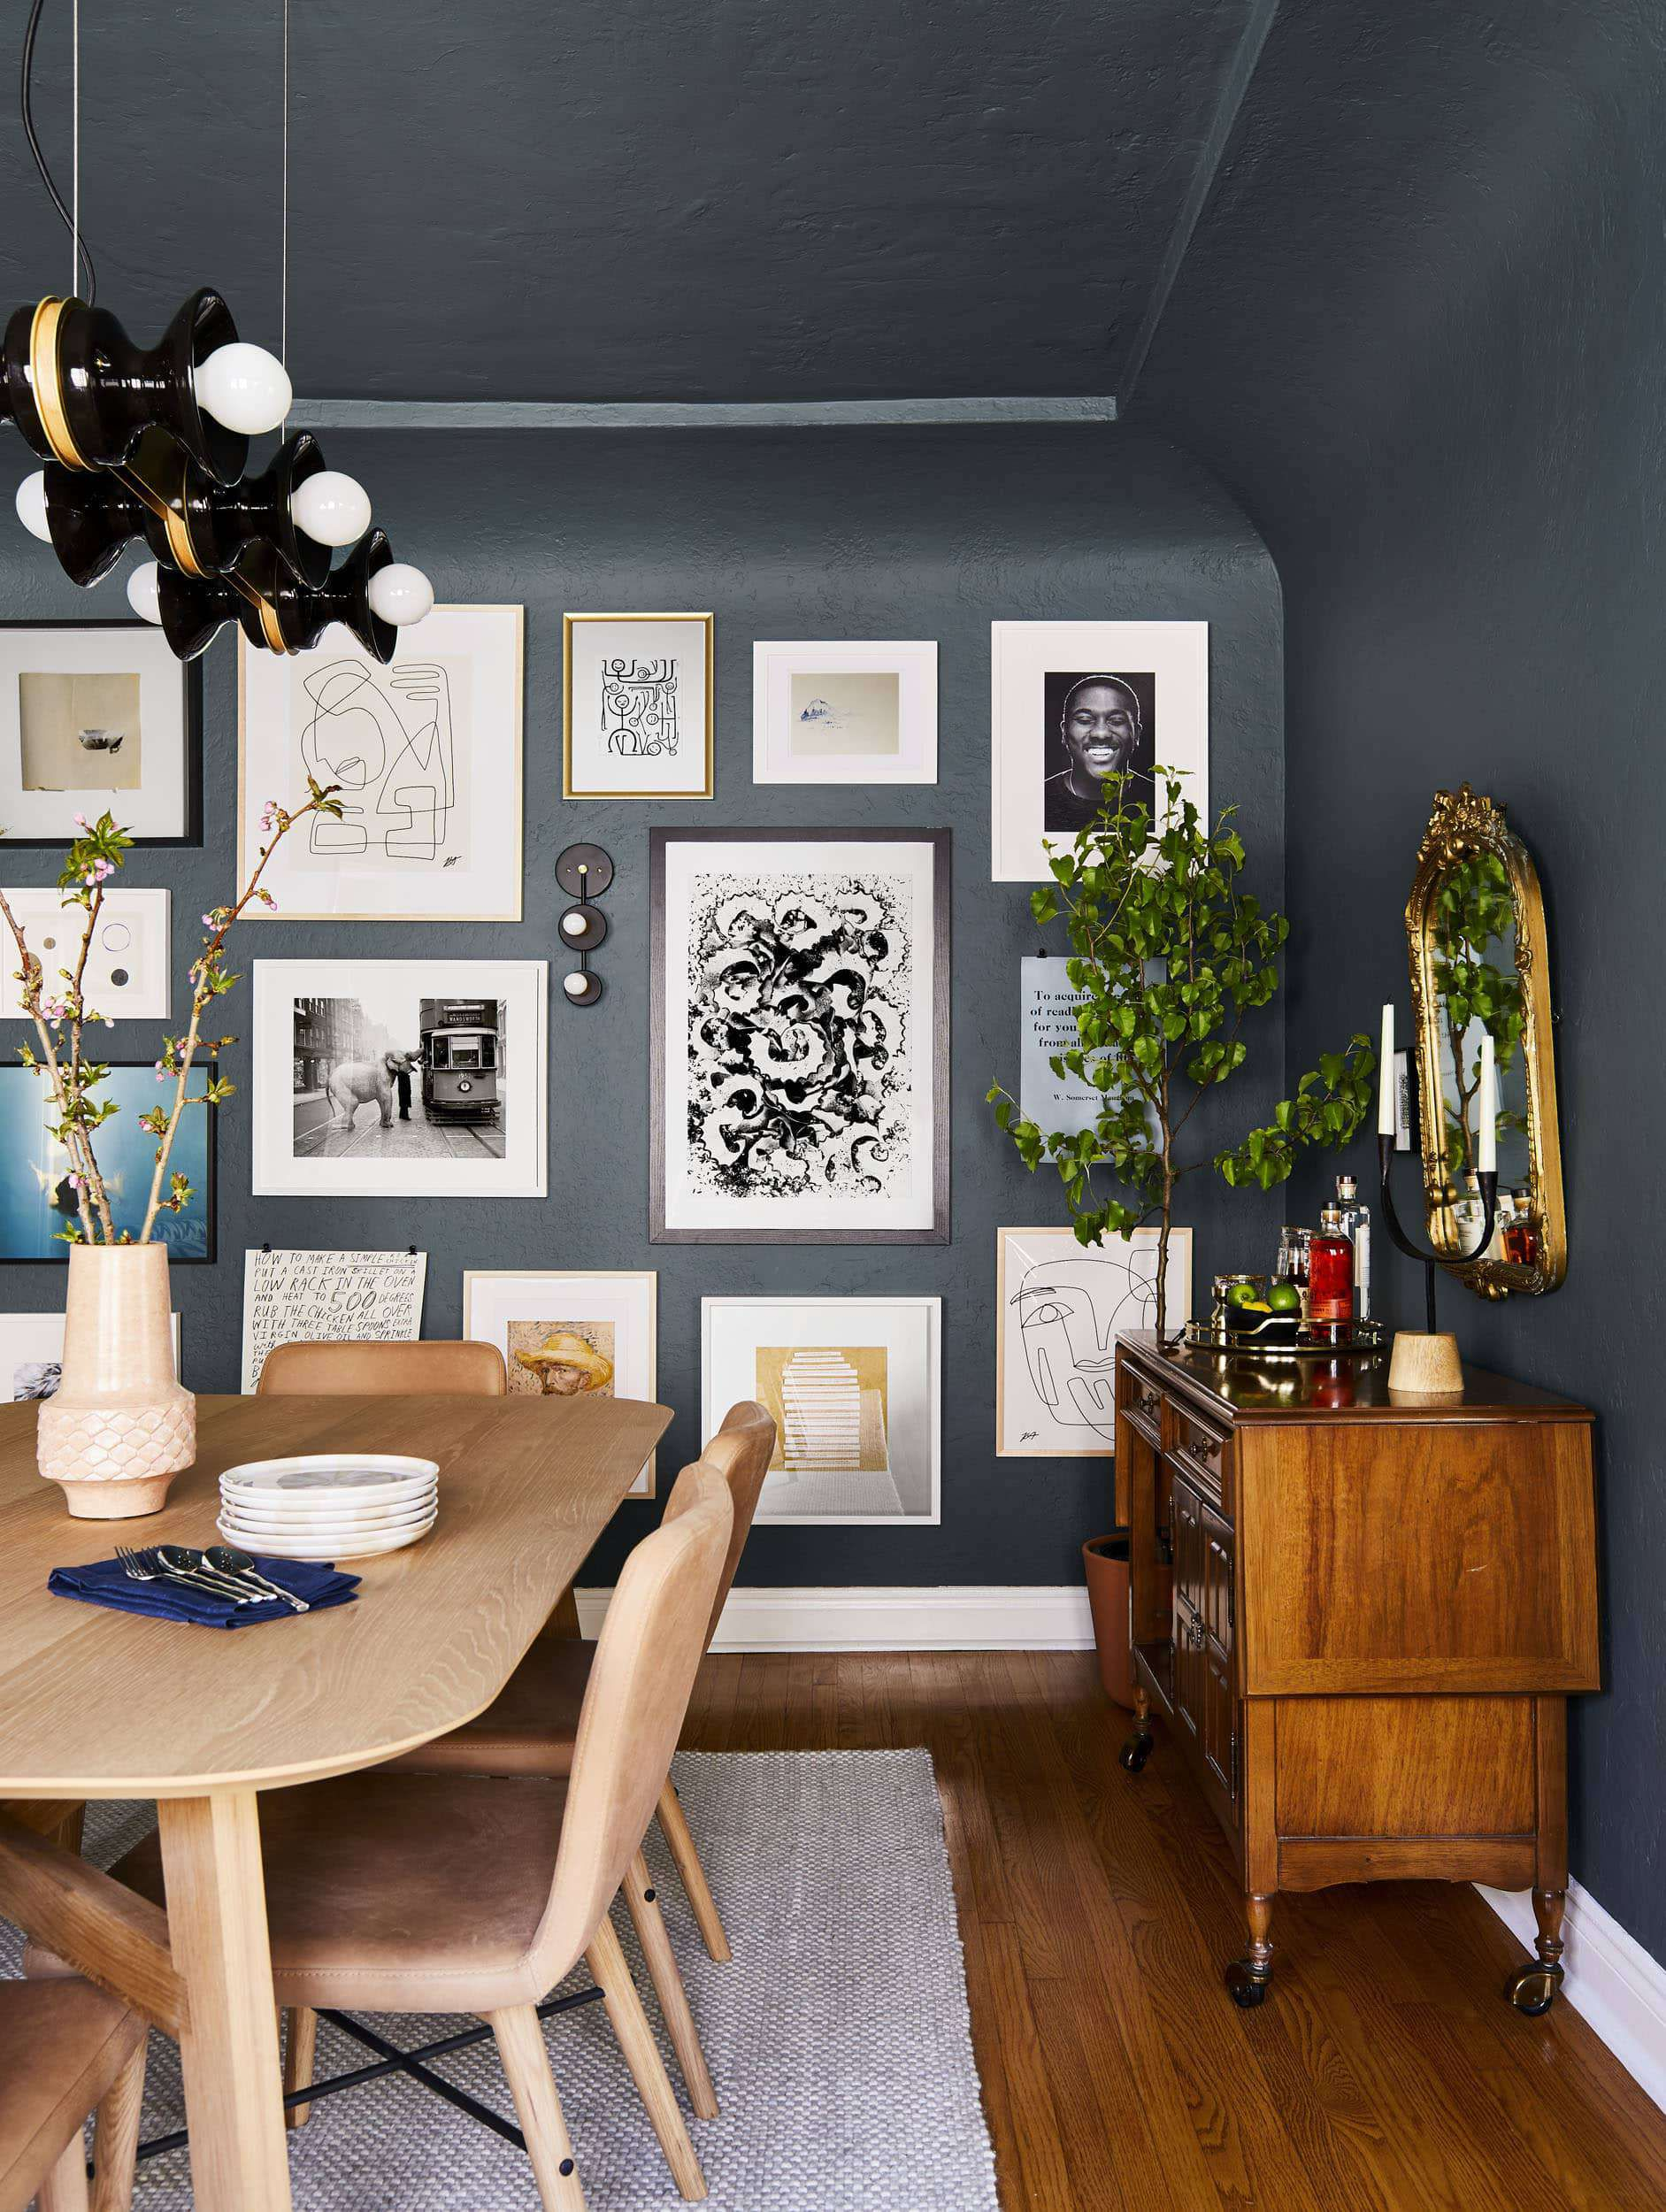 20 Gallery Wall Ideas to Spice Up Your Blank Walls